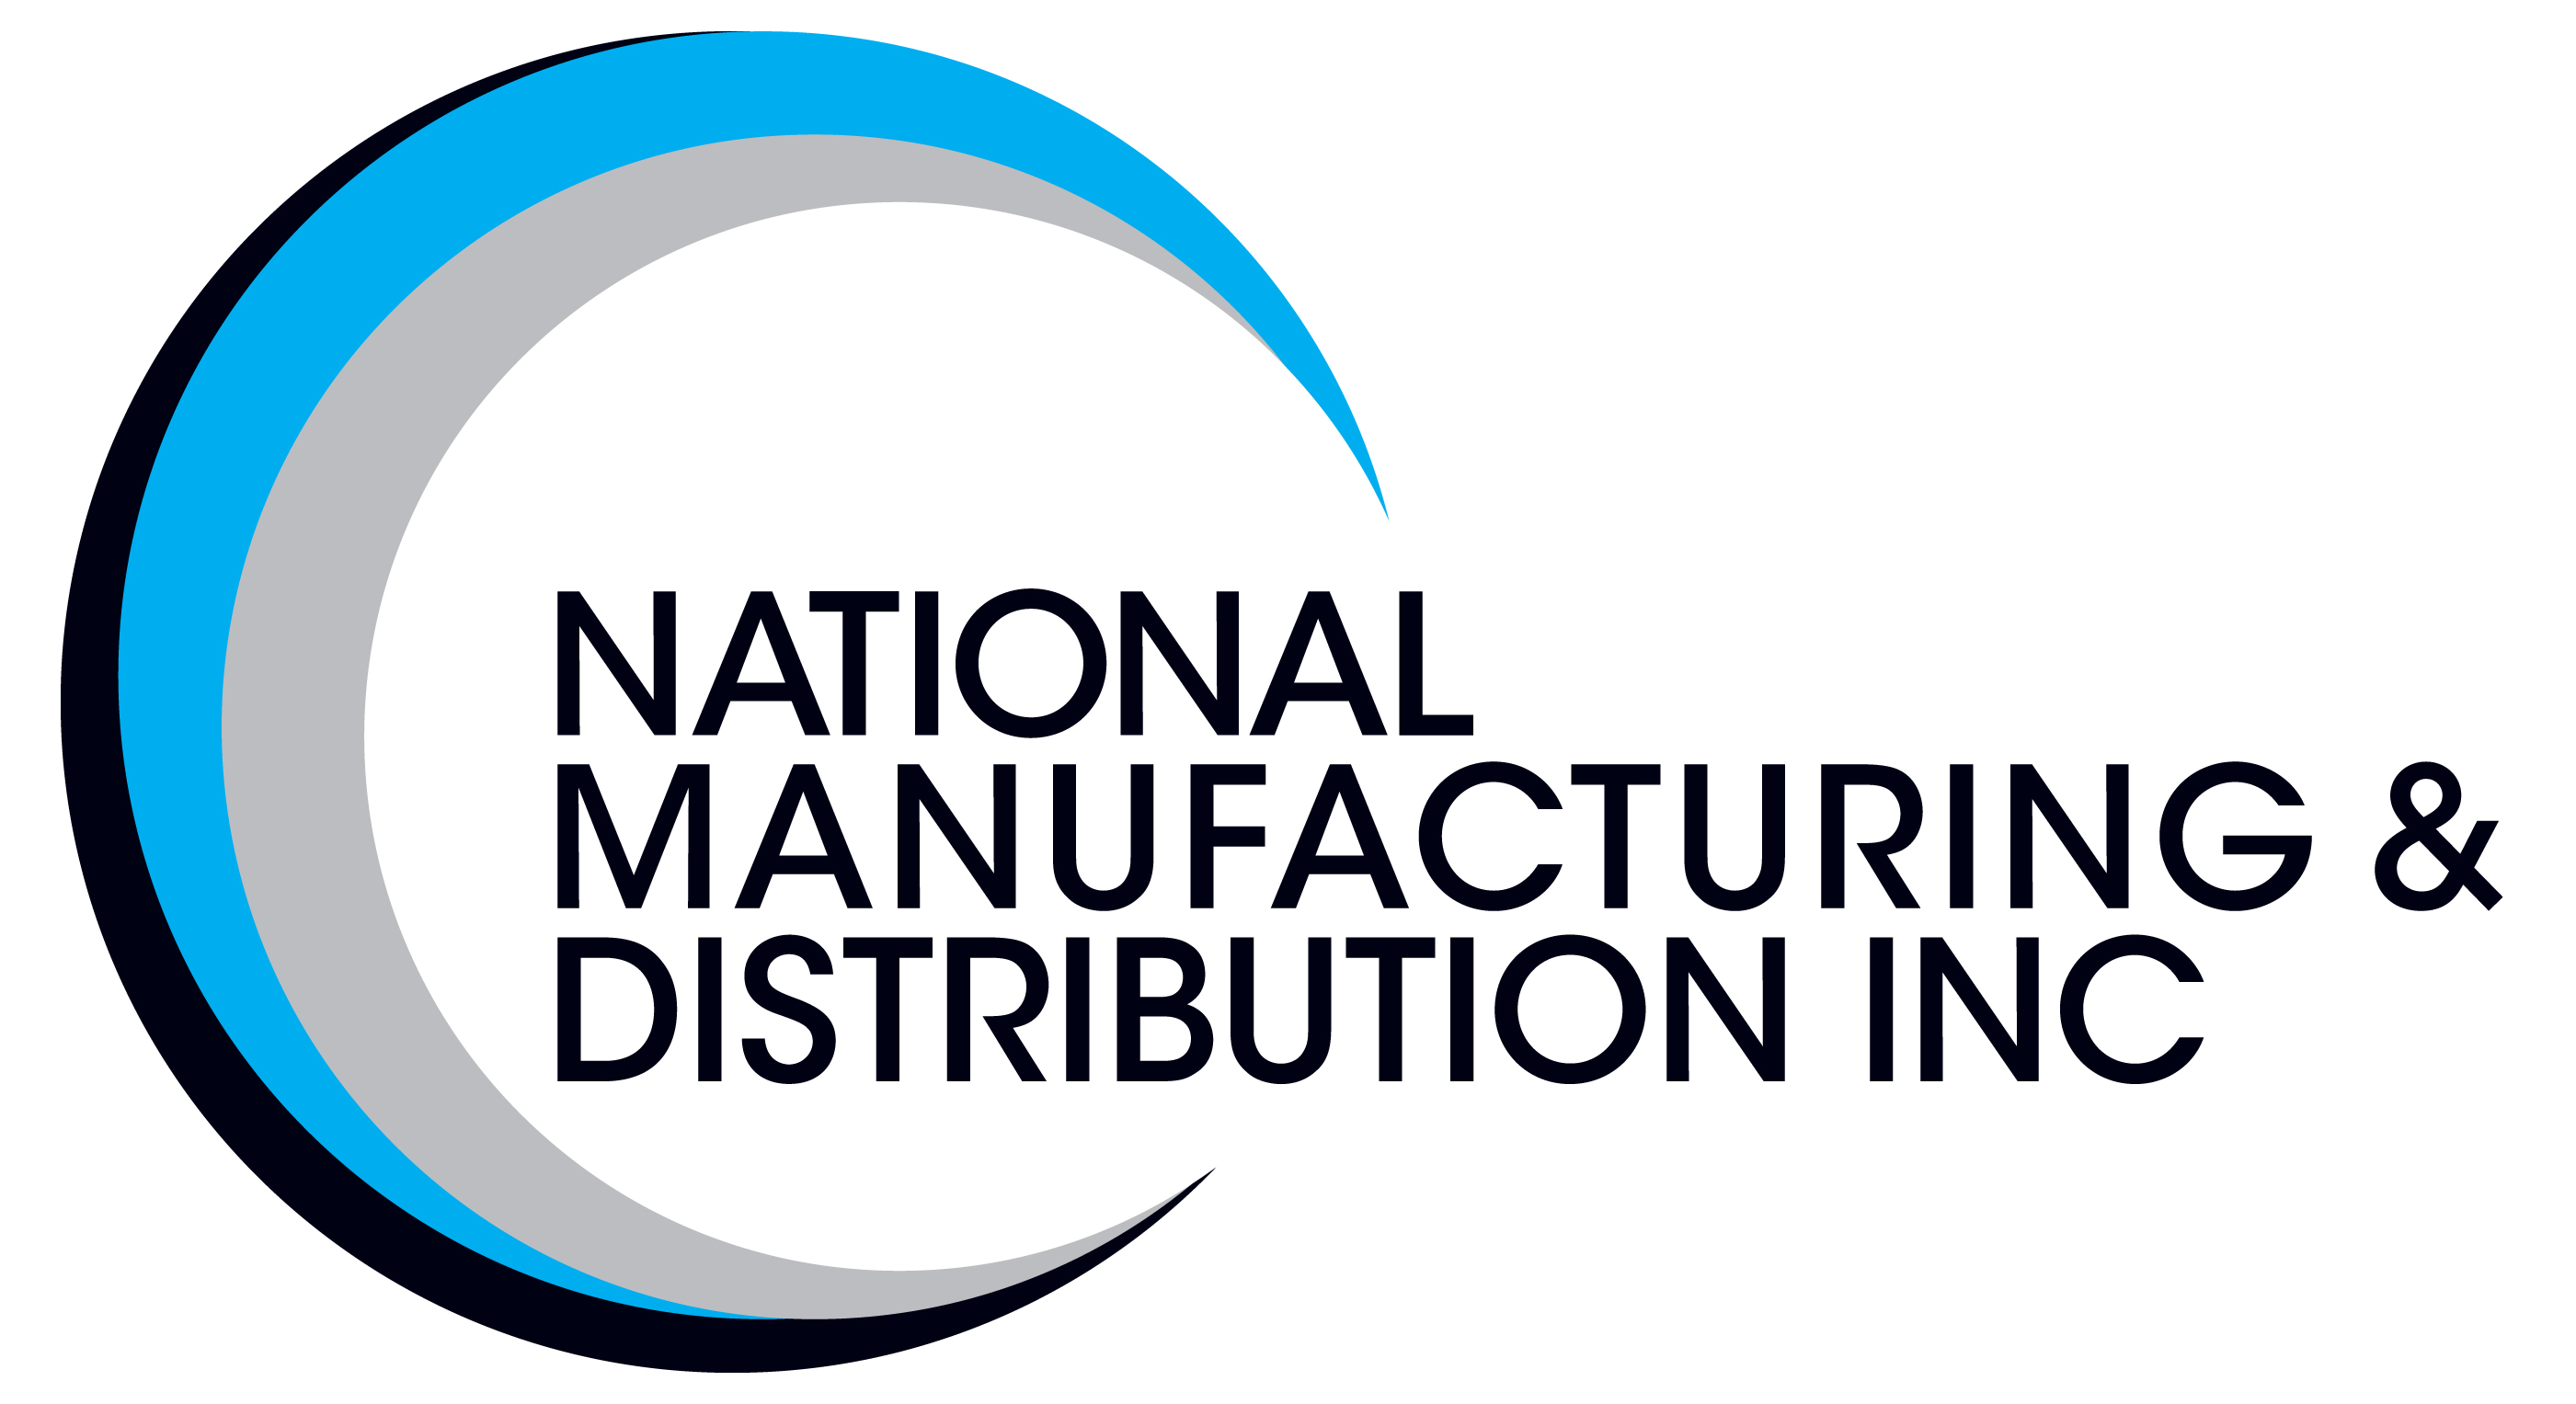 National Manufacturing & Distribution Inc.